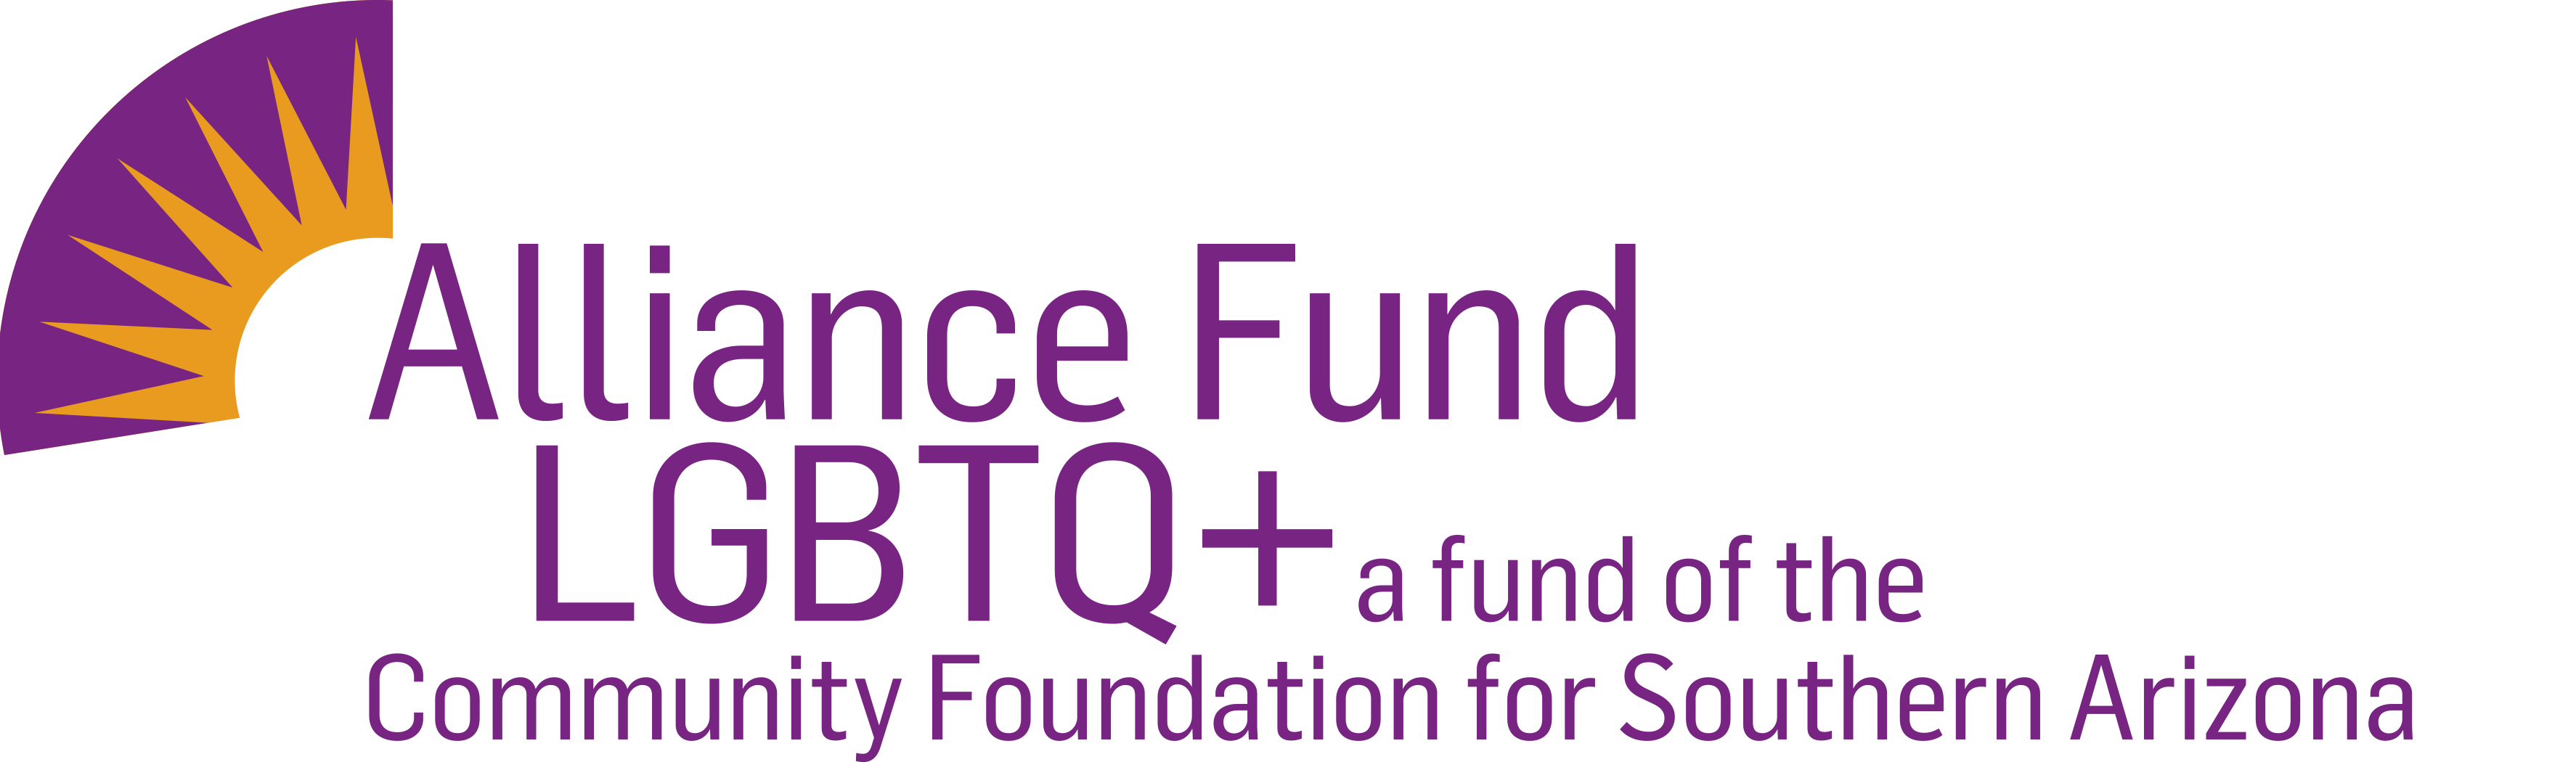 Alliance Fund LGBTQ+ | A fund of the Community Foundation for Southern Arizona